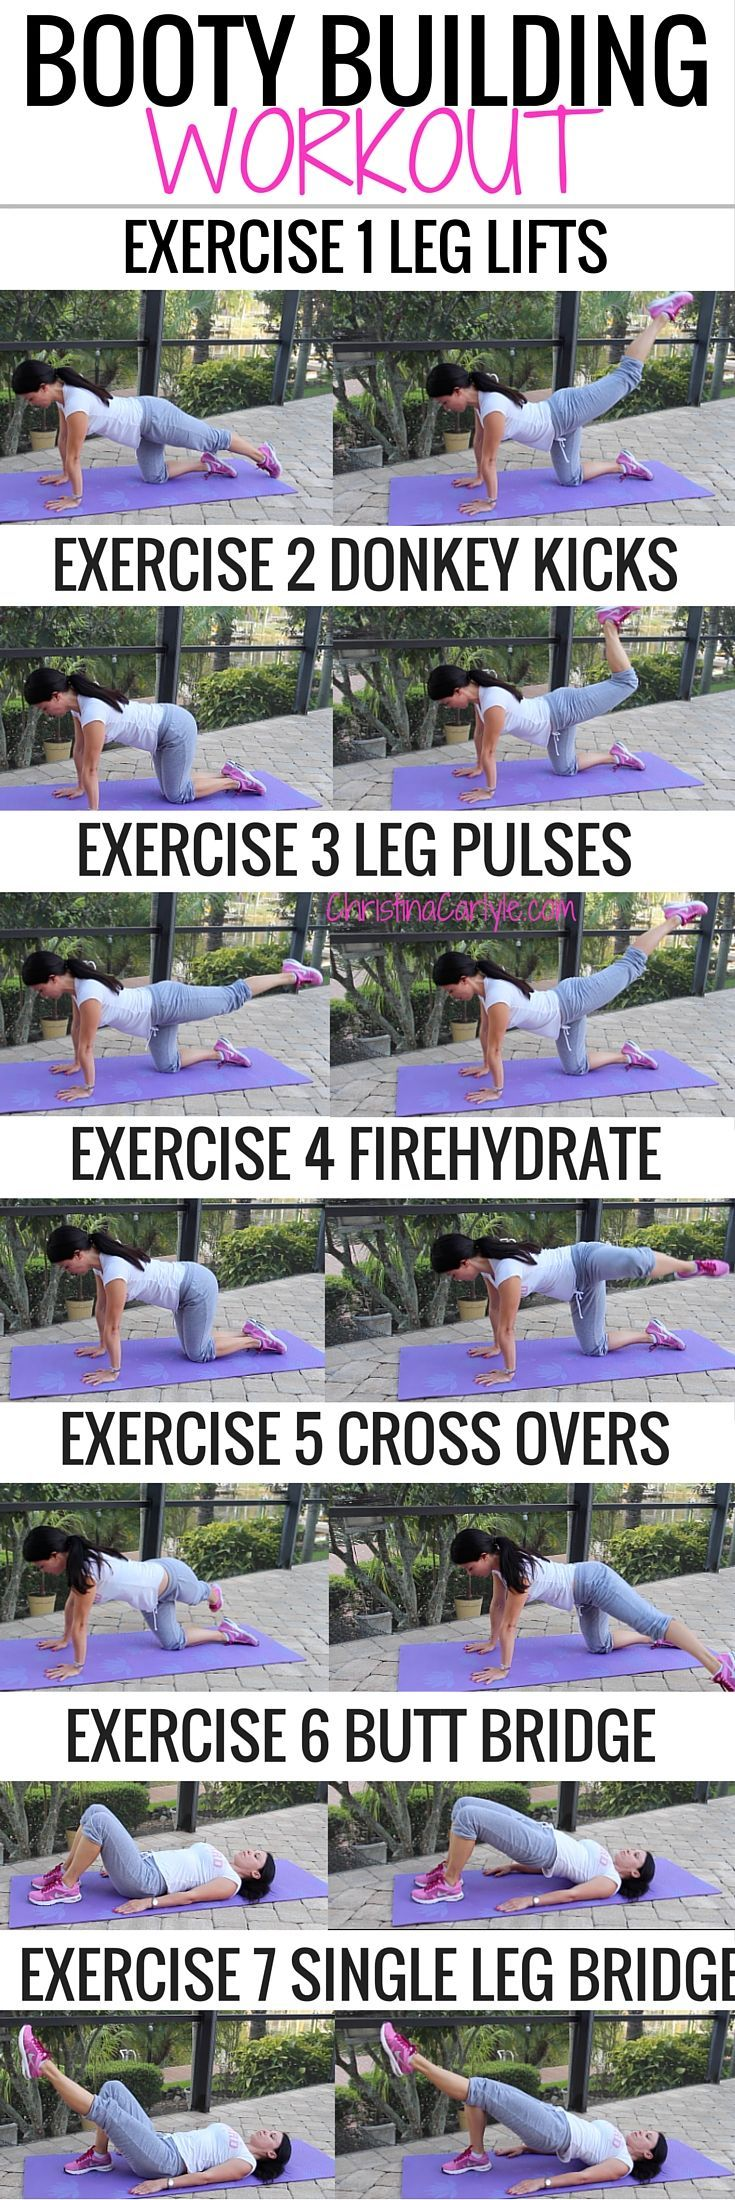 Butt Exercises.  The best booty building exercises for women. http://www.fatloschronicles.org/